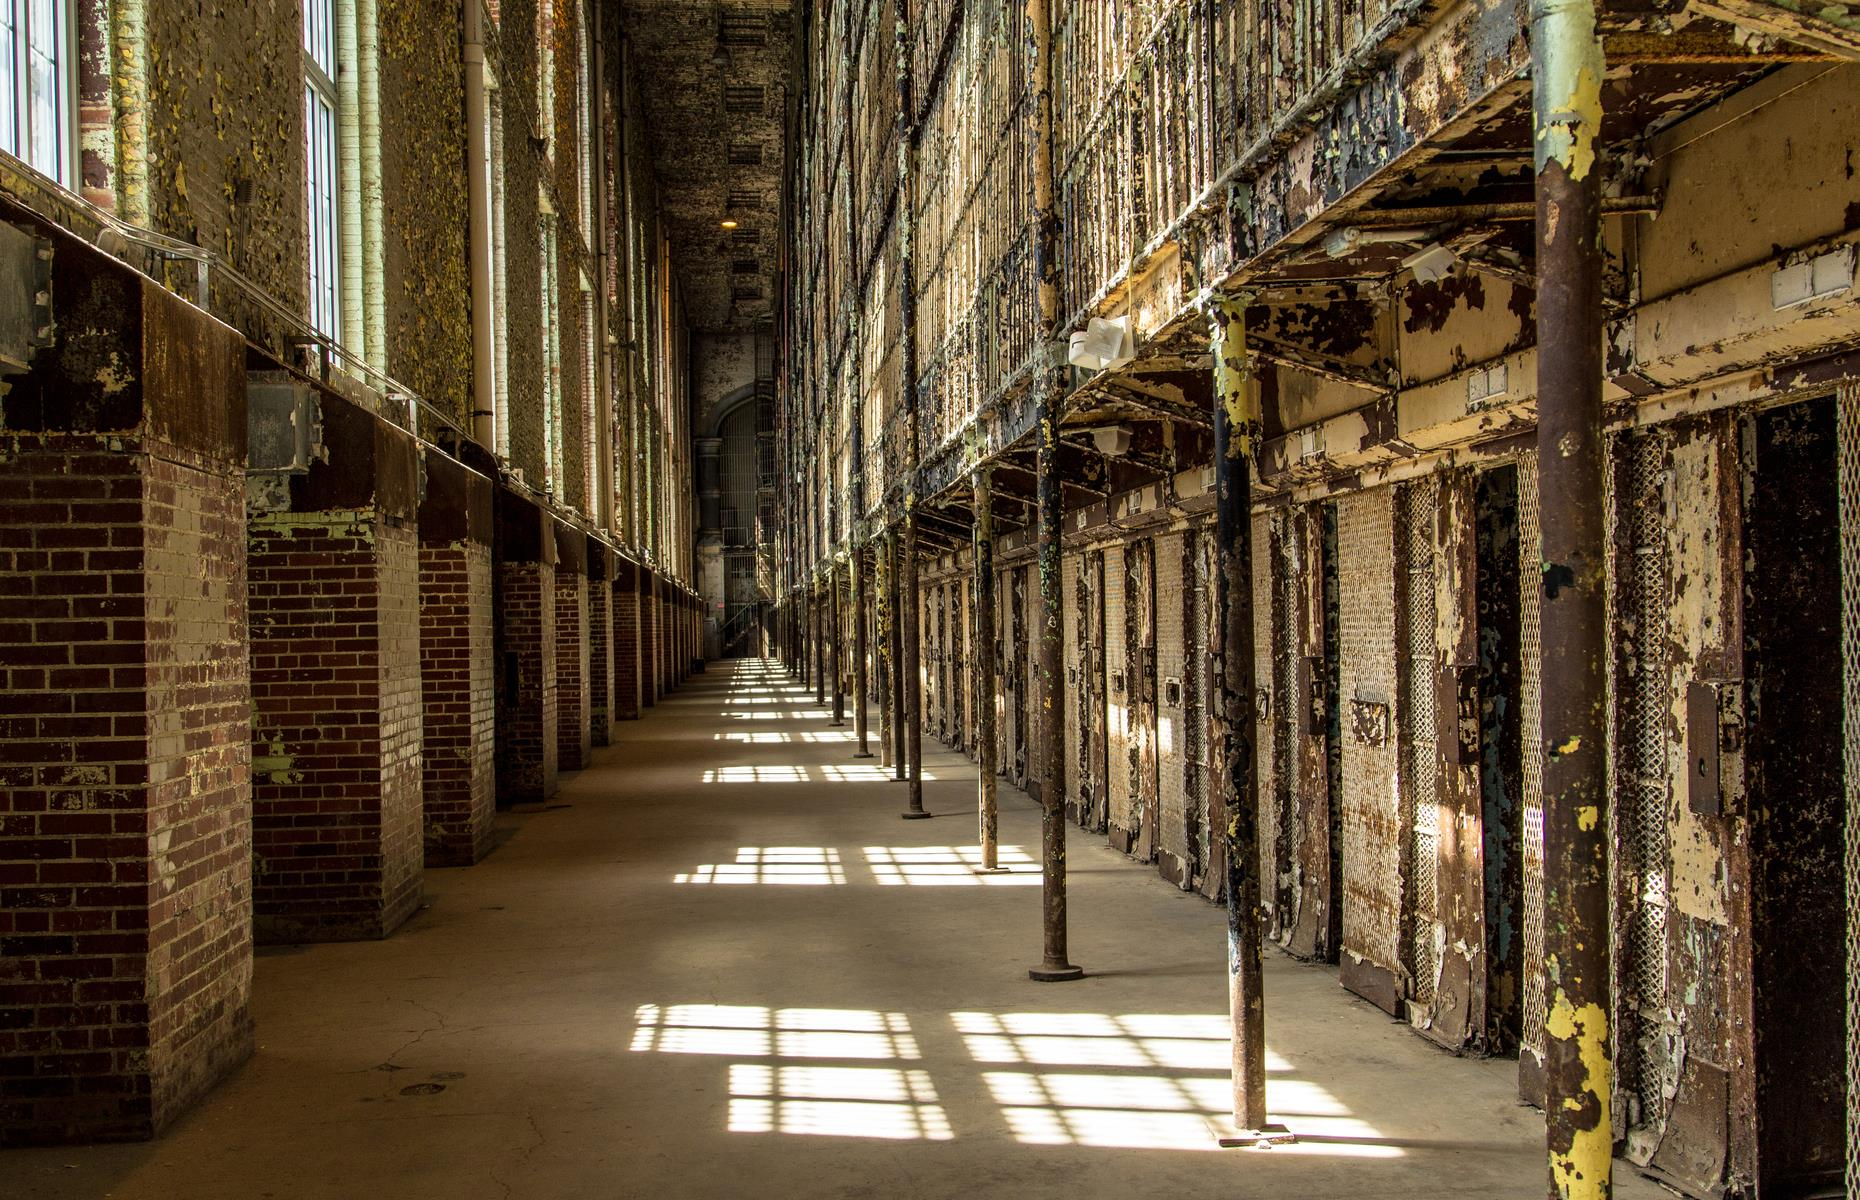 Slide 37 of 52: This eerie abandoned prison has a long history. Construction of the reformatory began in 1886, on the site of one-time training ground for Civil War soldiers, and, over the years, thousands of prisoners would live out their days here. But reports of poor conditions and maltreatment of prisoners meant the site was abandoned by 1990. Now self-guided and guided tours take visitors through the spine-chilling corridors with their moldering cell blocks and rusting iron bars – the Facebook page is the best place for current updates. The prison was also famously used as a location for 1994 film The Shawshank Redemption.